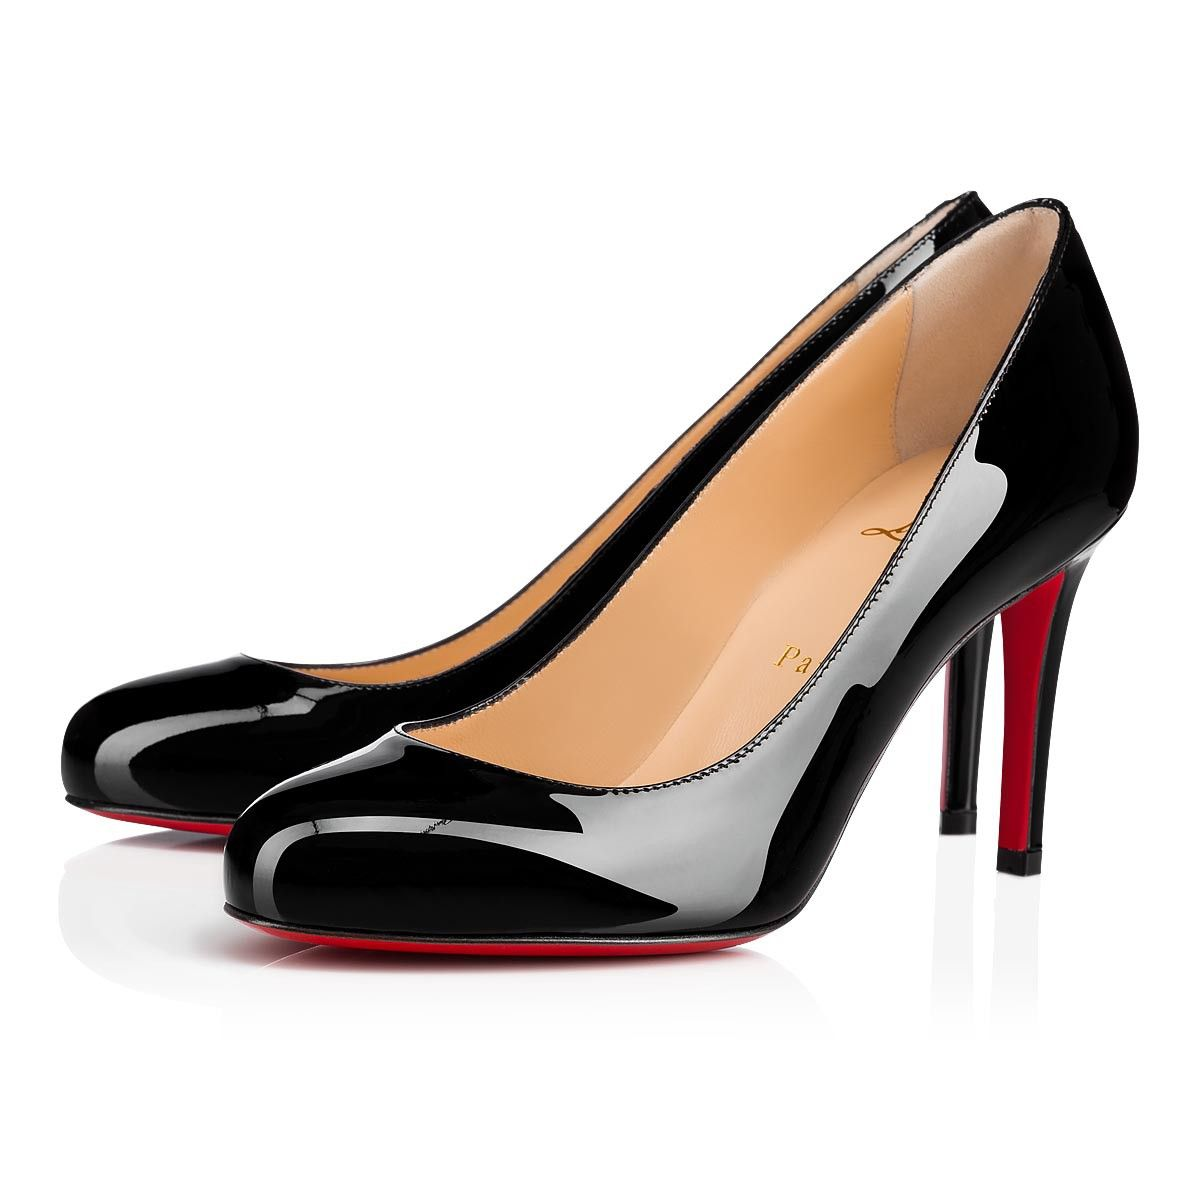 63ccc0fc93ff Fifille Patent 85 Black Patent Calfskin - Women Shoes - Christian ...